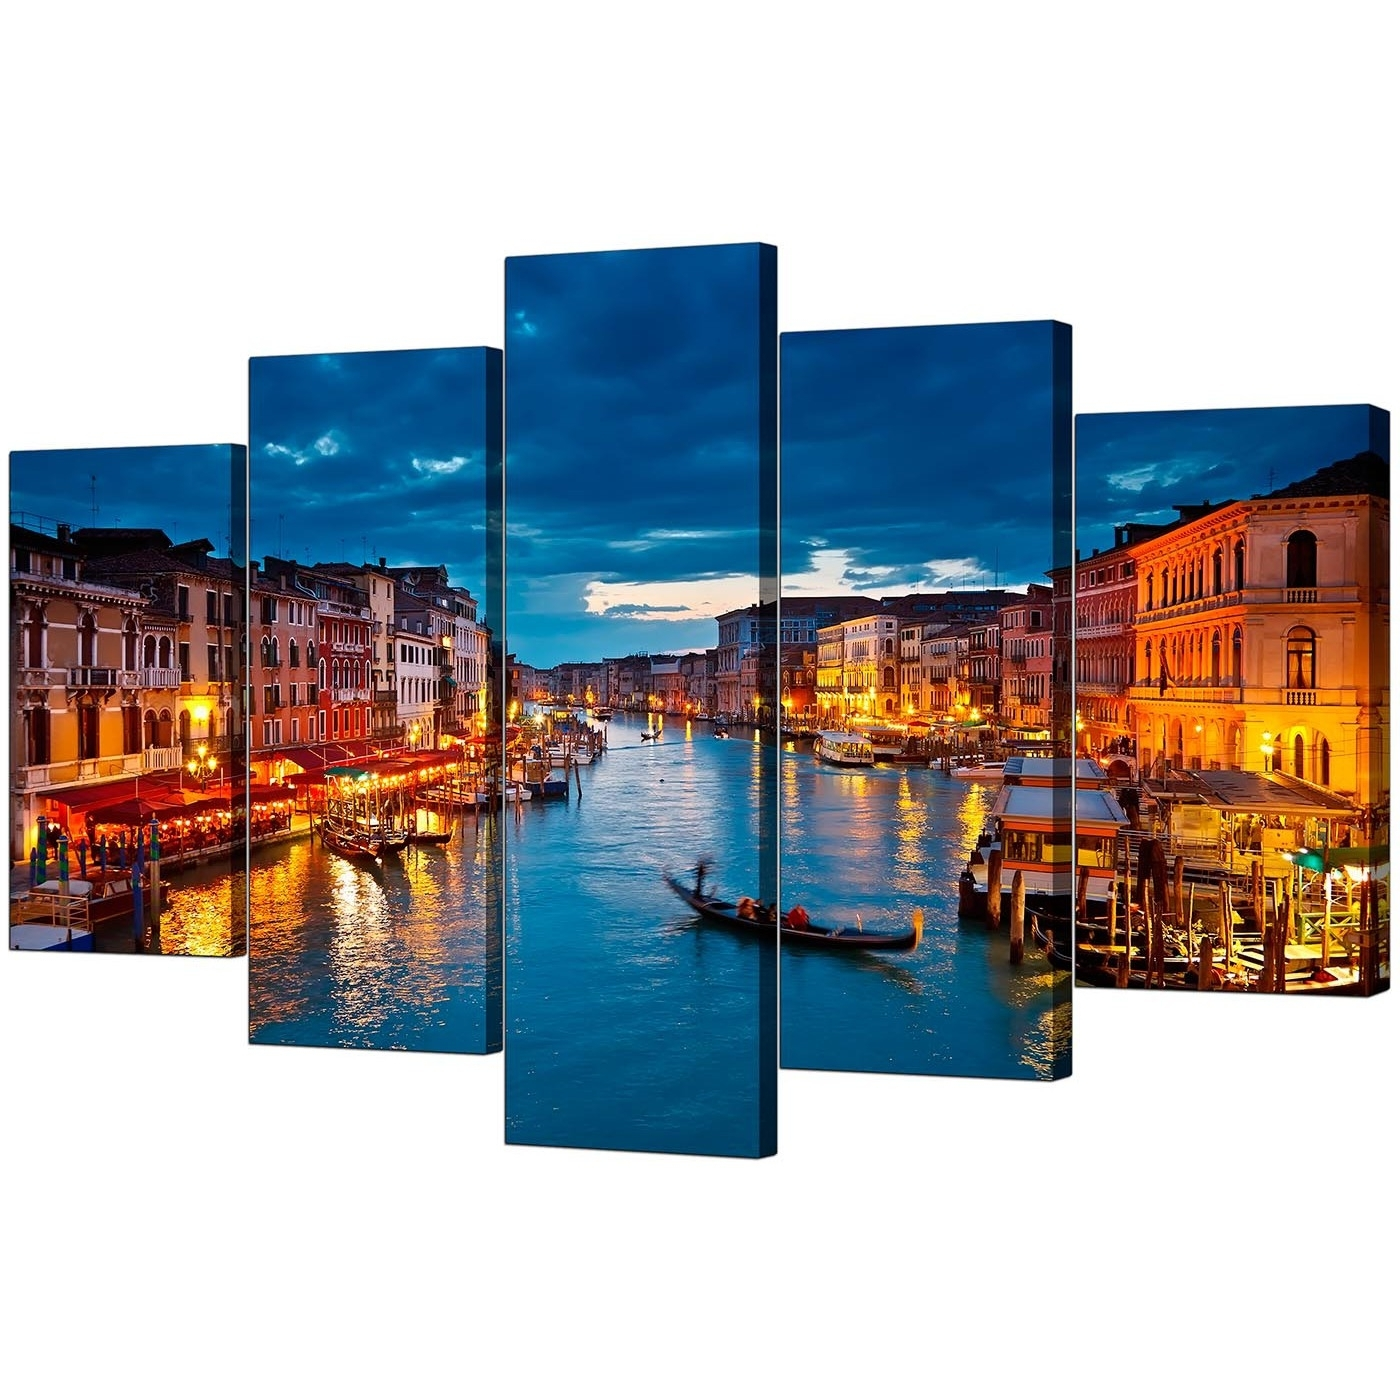 Canvas Wall Art Of Italy Pertaining To Current Venice Italy Canvas Prints For Your Living Room – 5 Panel (View 7 of 15)